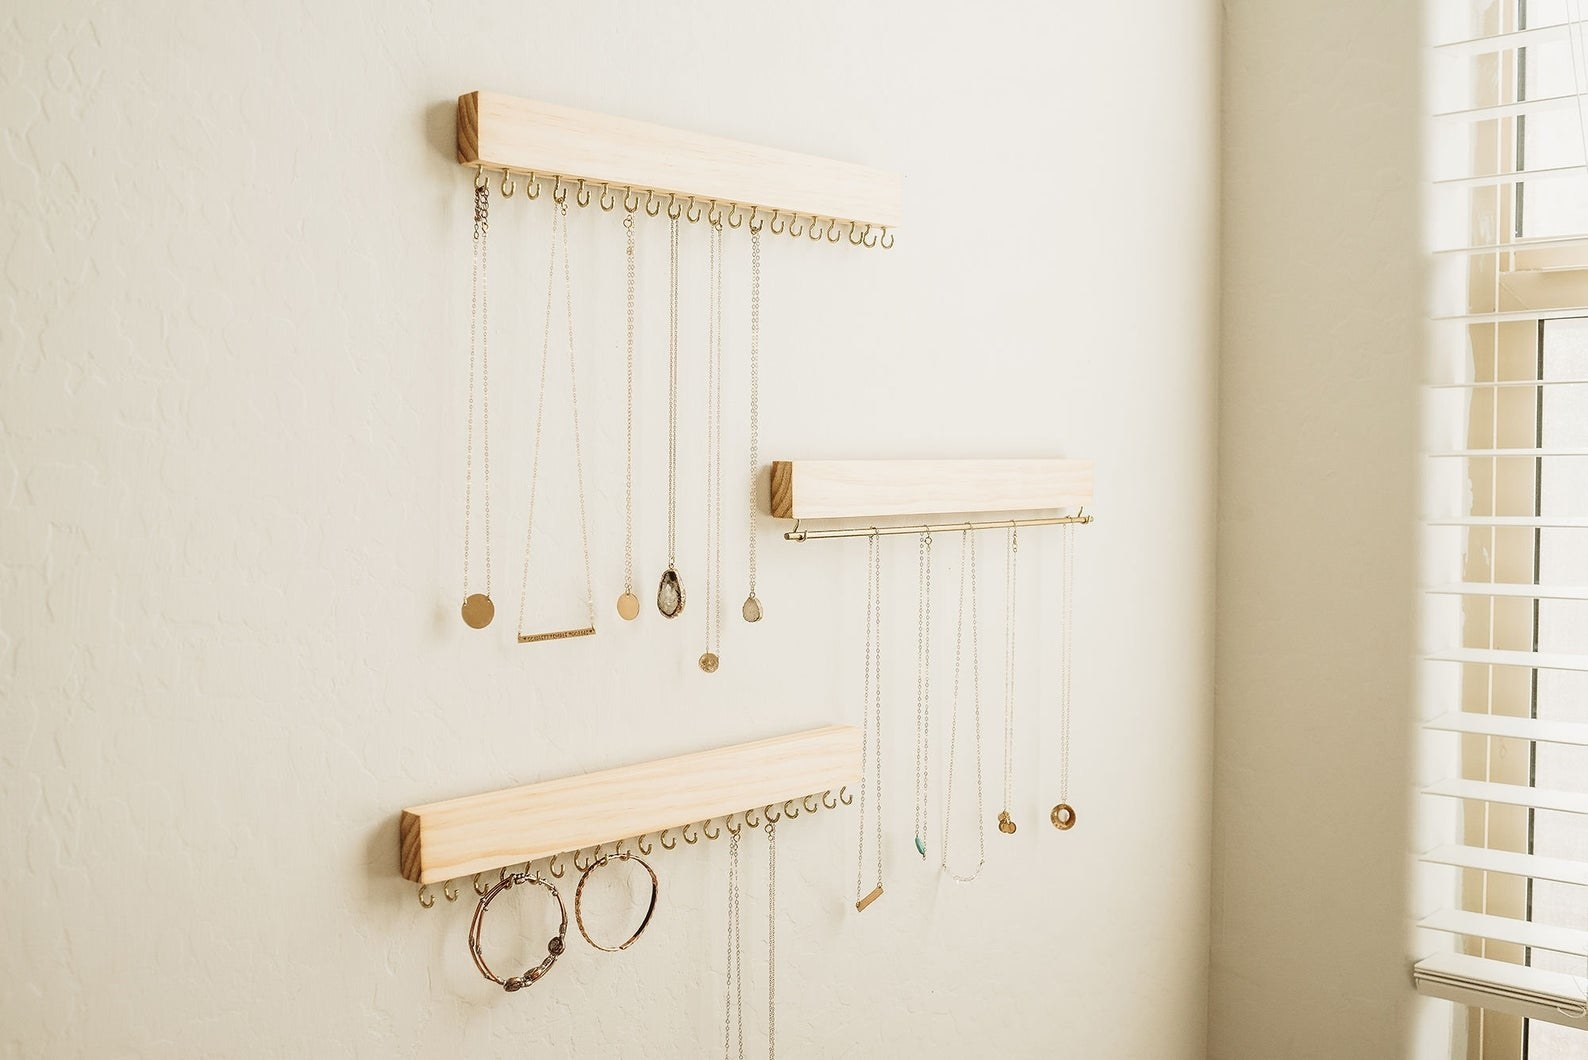 three pieces of wood with hooks on the bottom that are holding jewelry